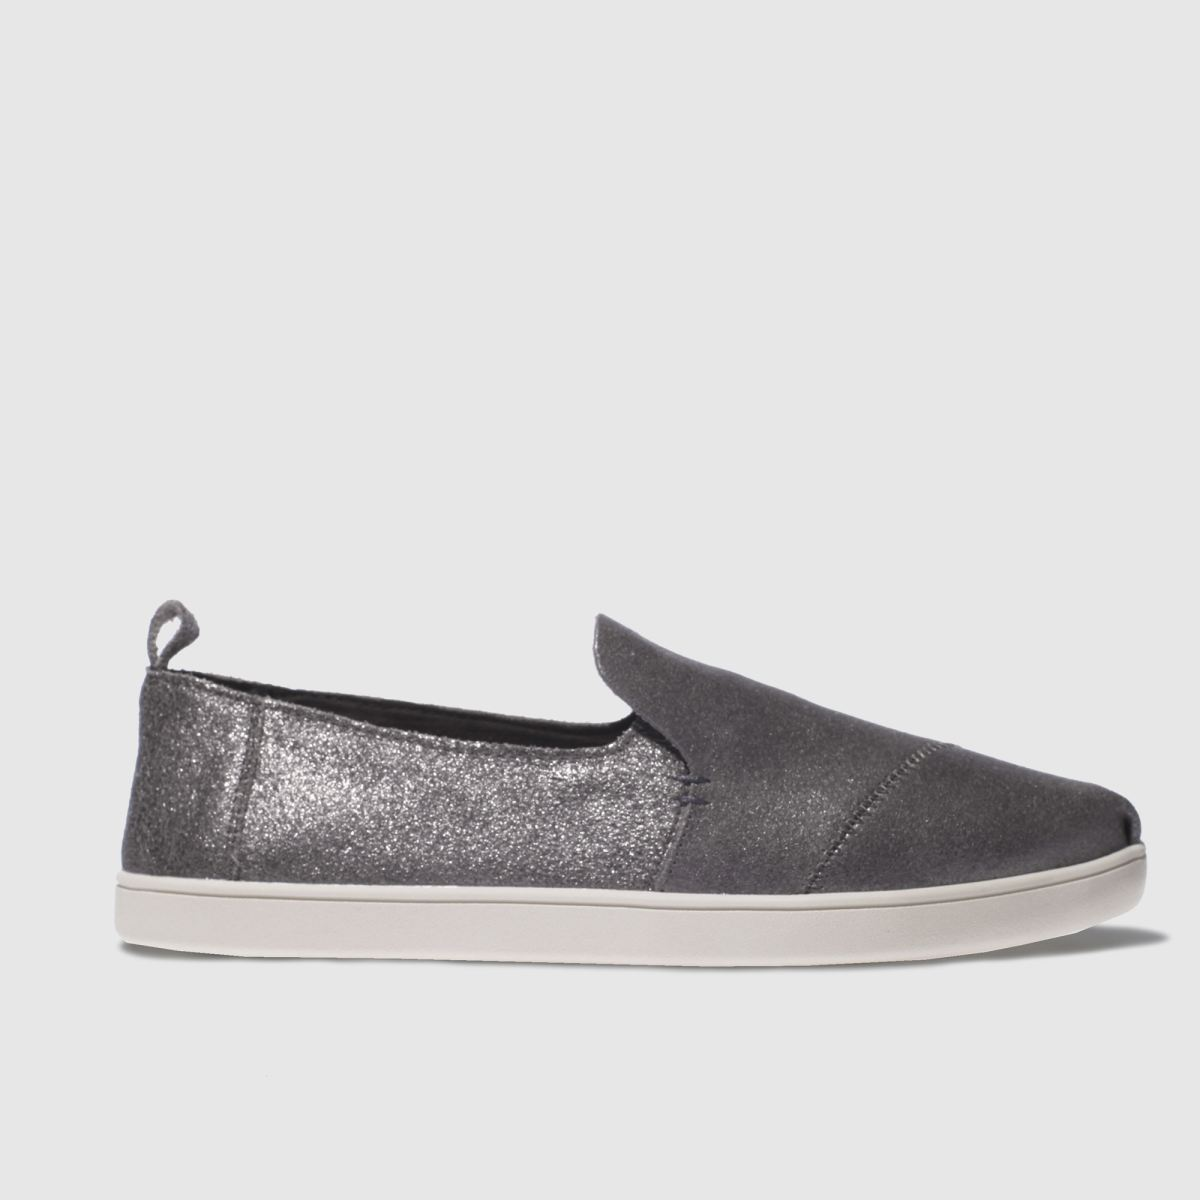 toms pewter deconstructed alpargata flat shoes